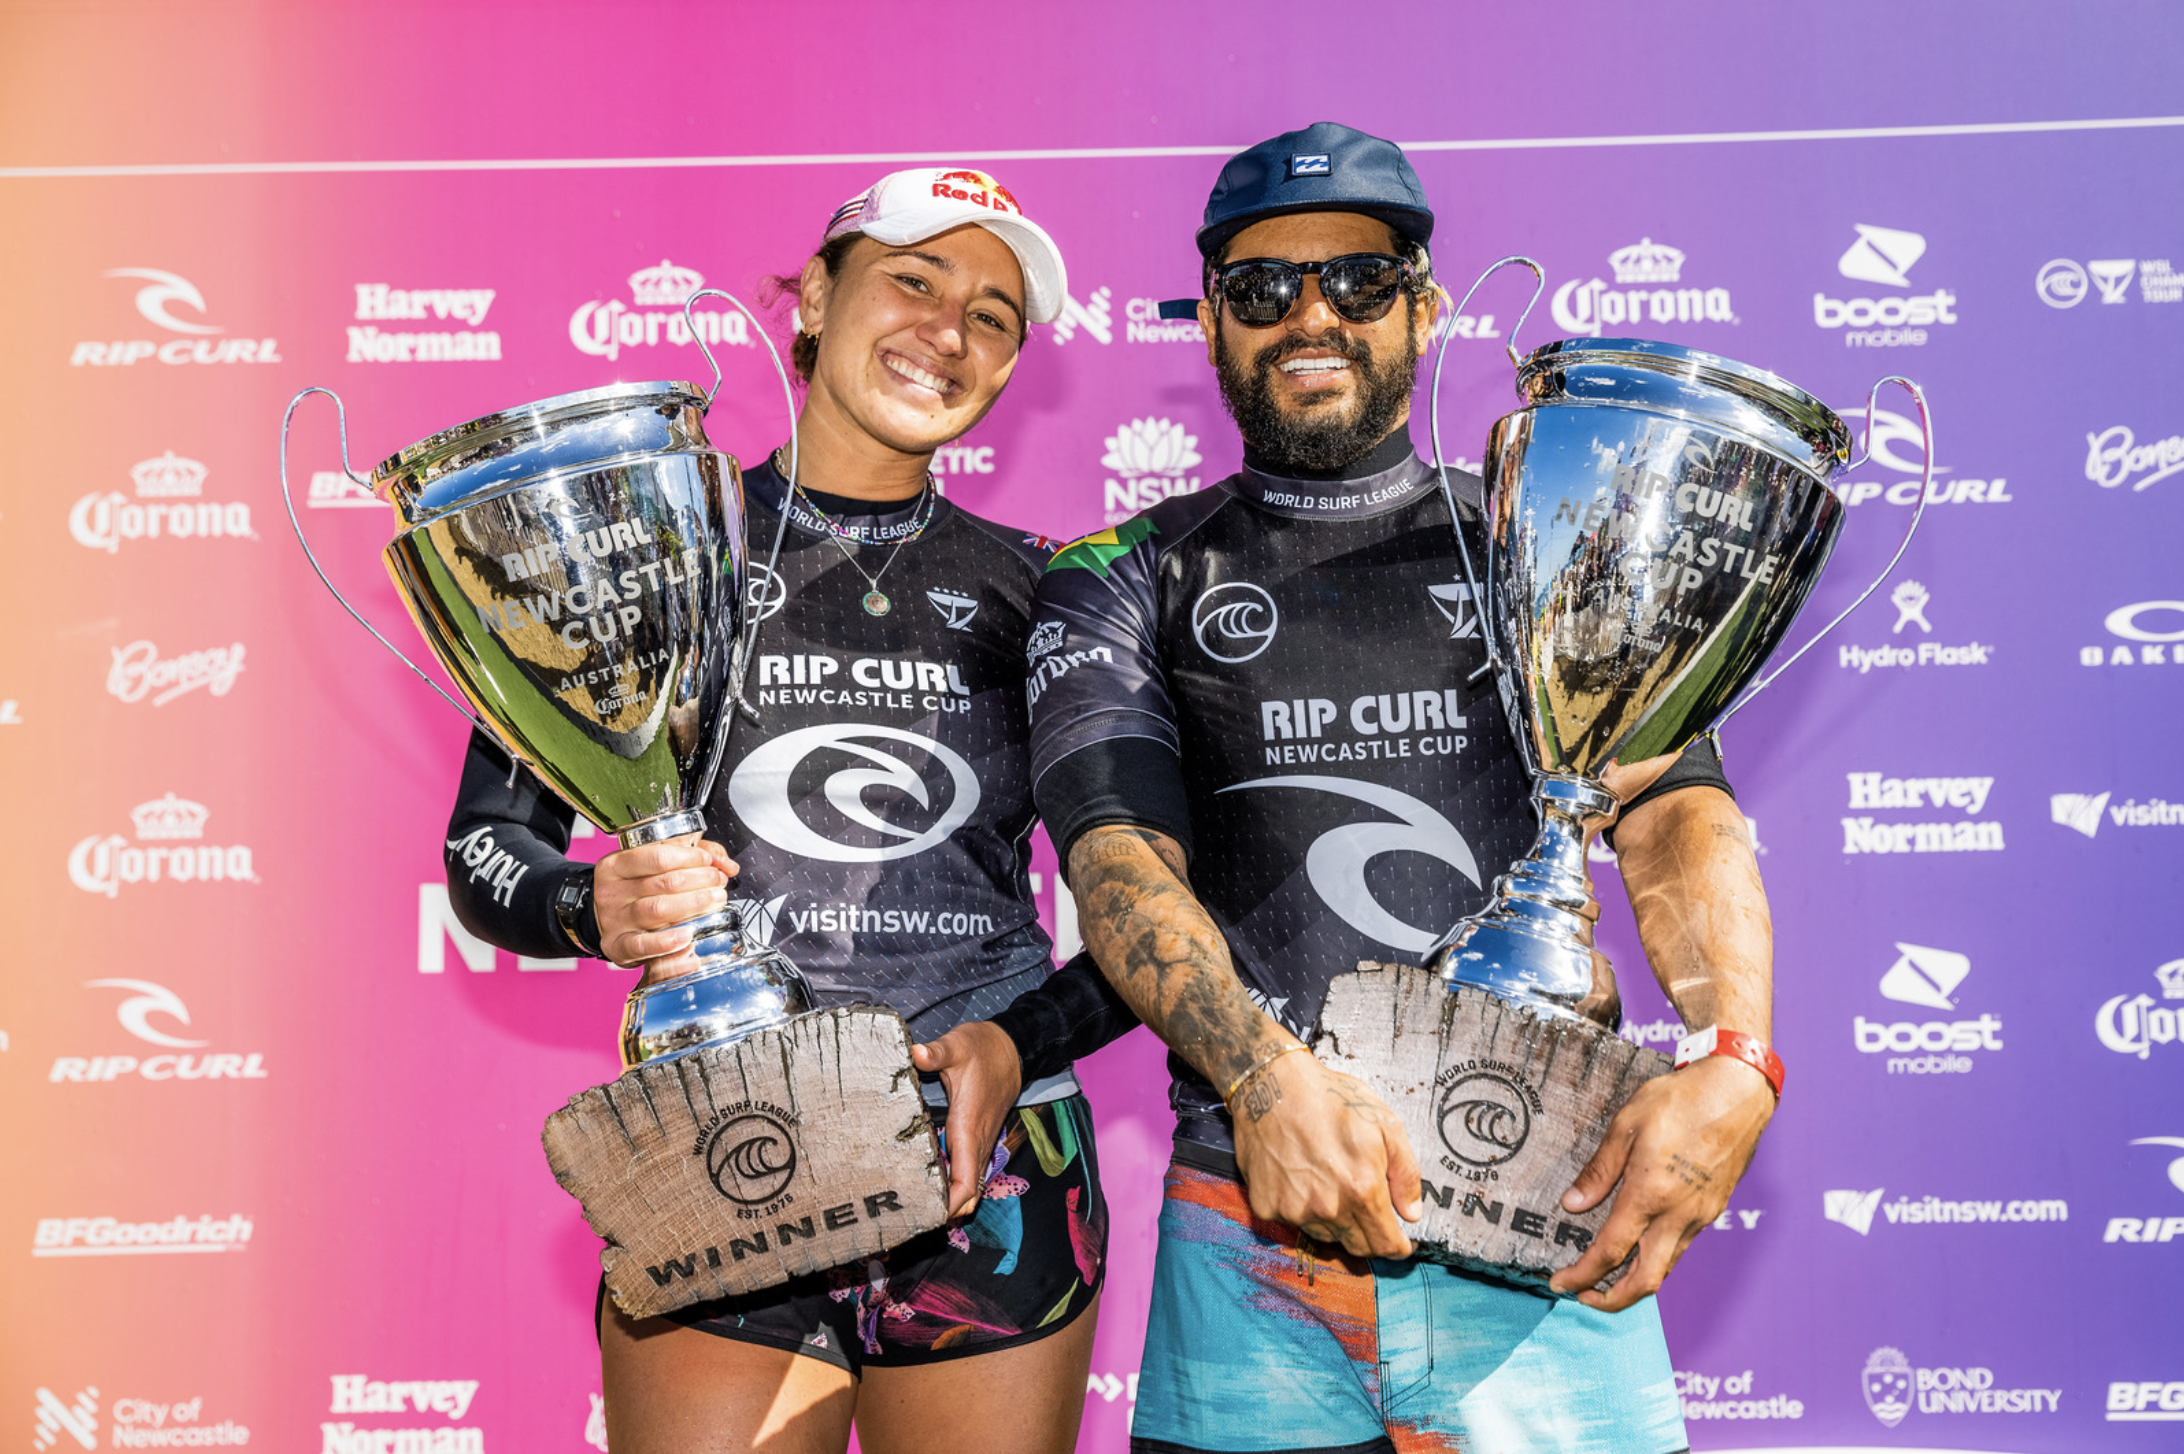 Carissa Moore and Italo Ferreira Win Rip Curl Newcastle Cup Presented by Corona